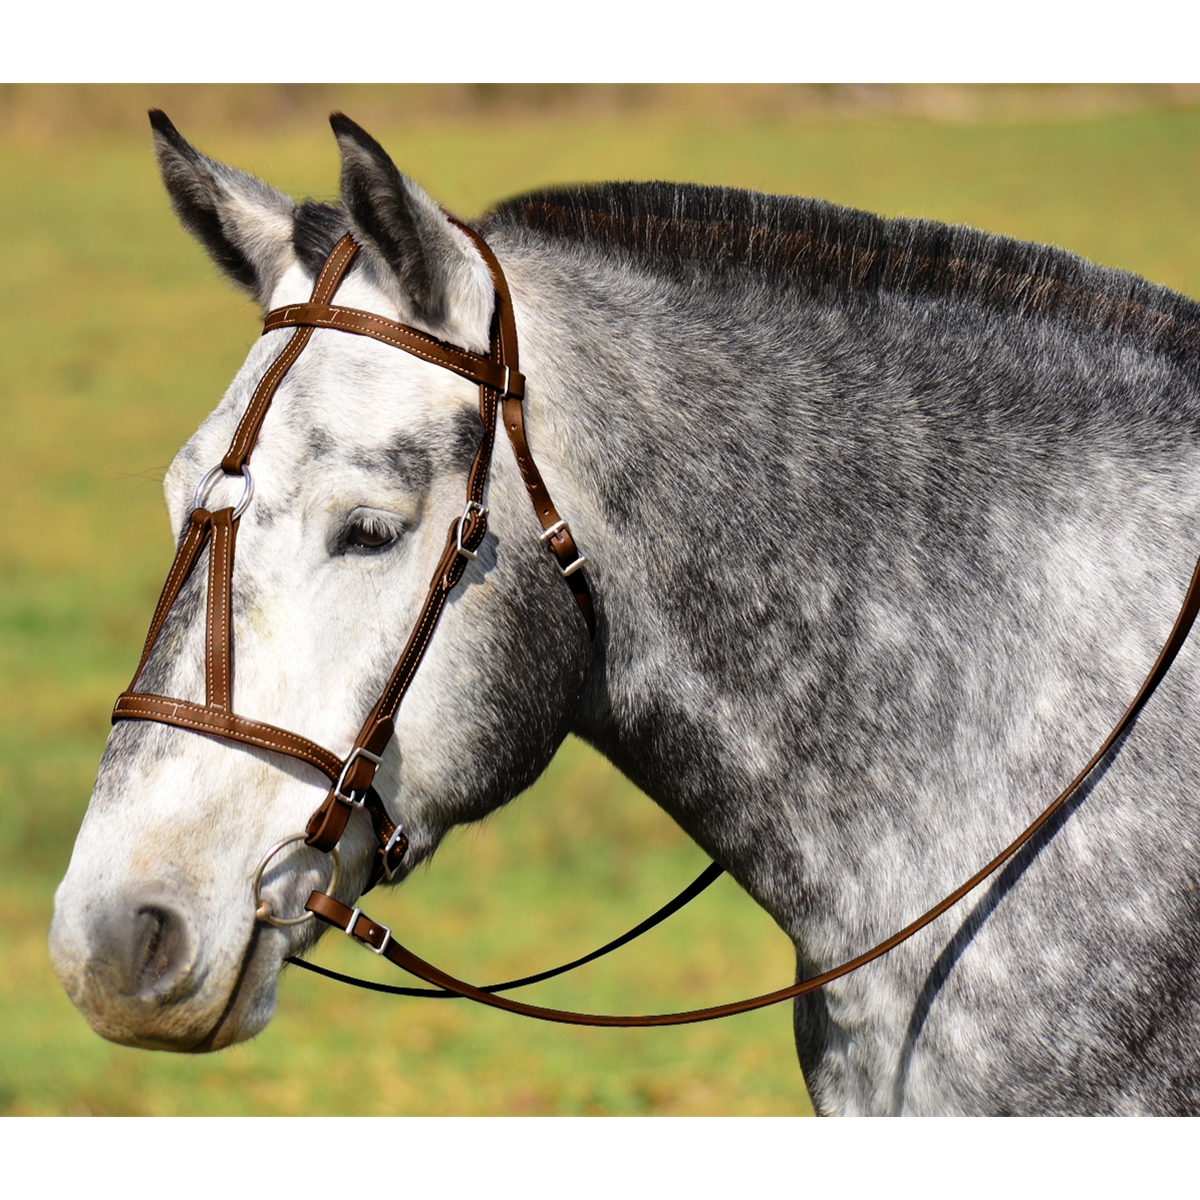 Order Warmblood Size War Or Medieval Horse Bridle Online From Two Horse Tack